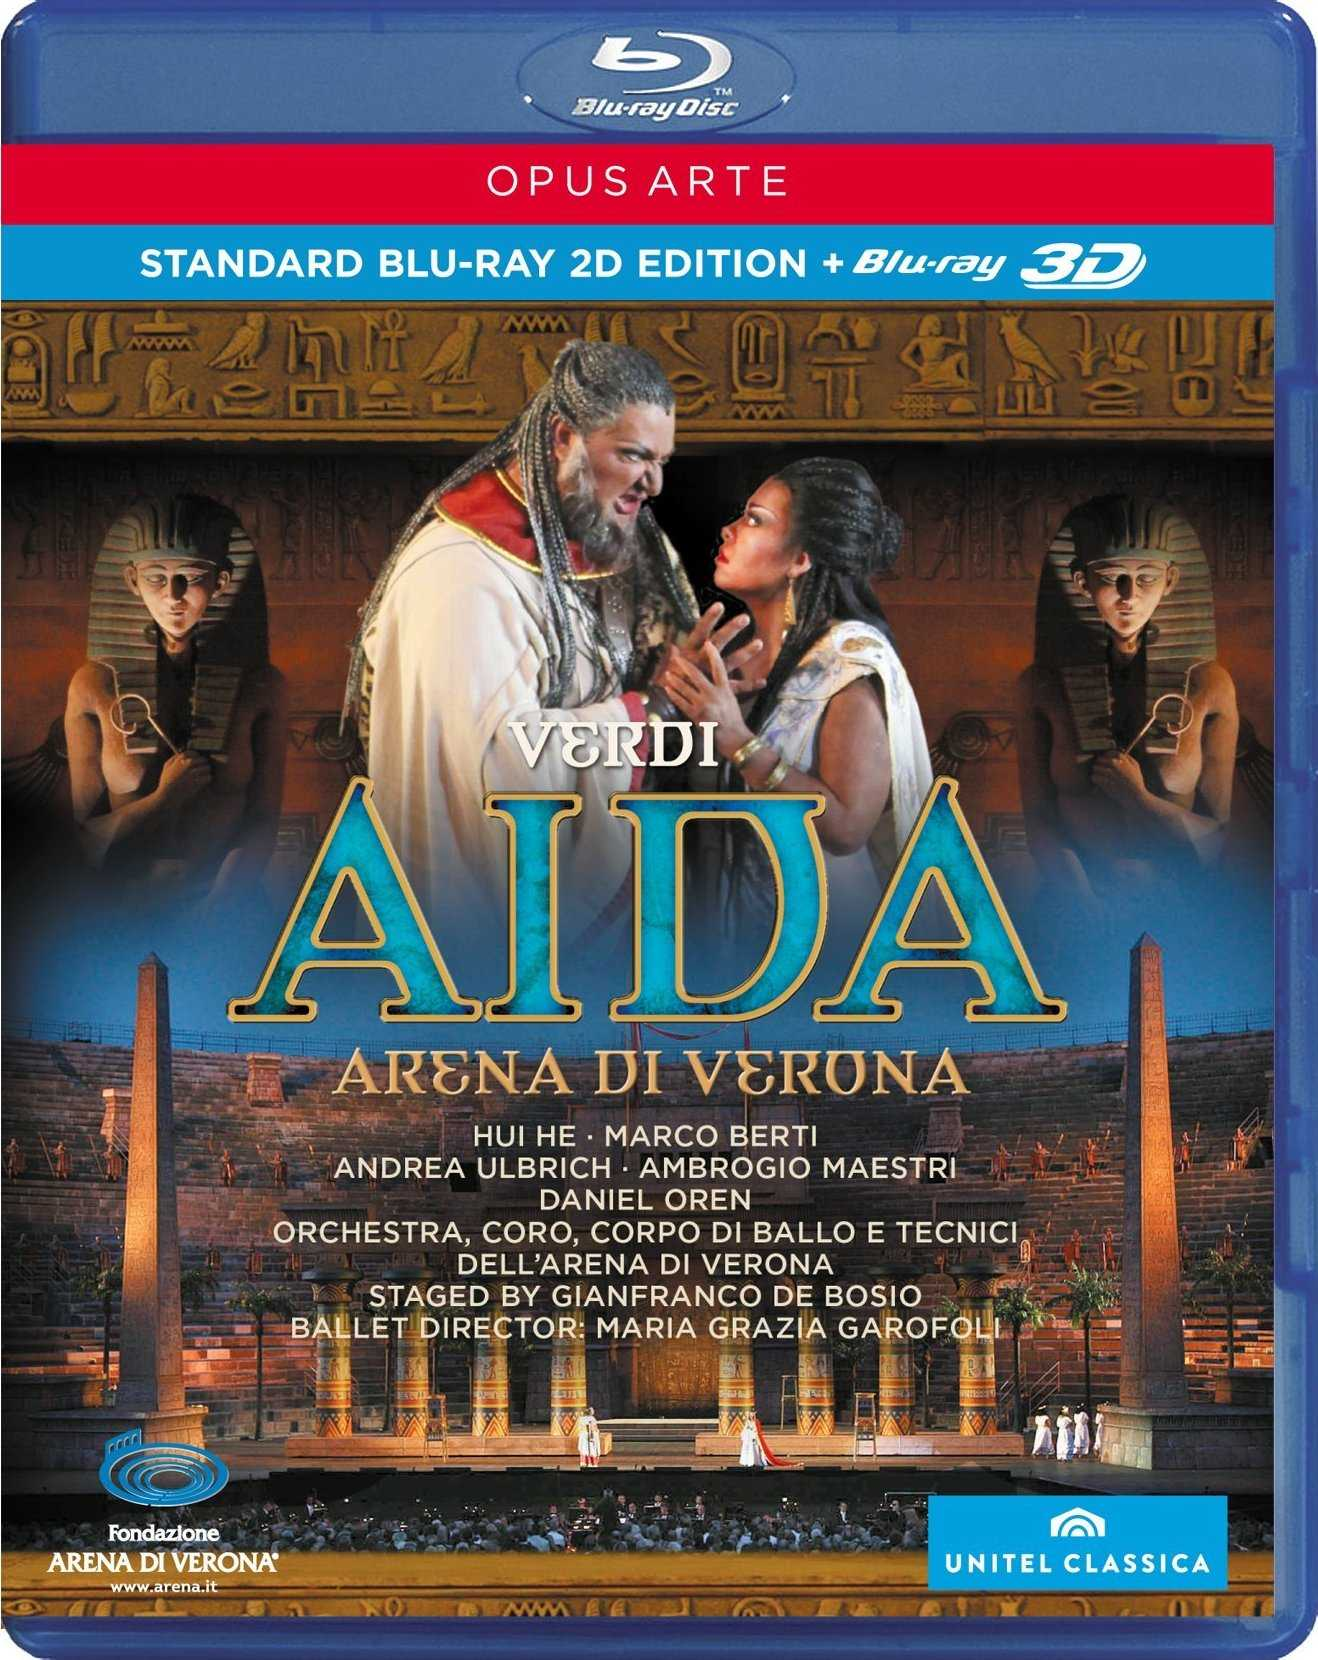 Giuseppe Verdi: Aida (2012) BluRay Full 2D 3D AVC DTS-HD ITA - DB